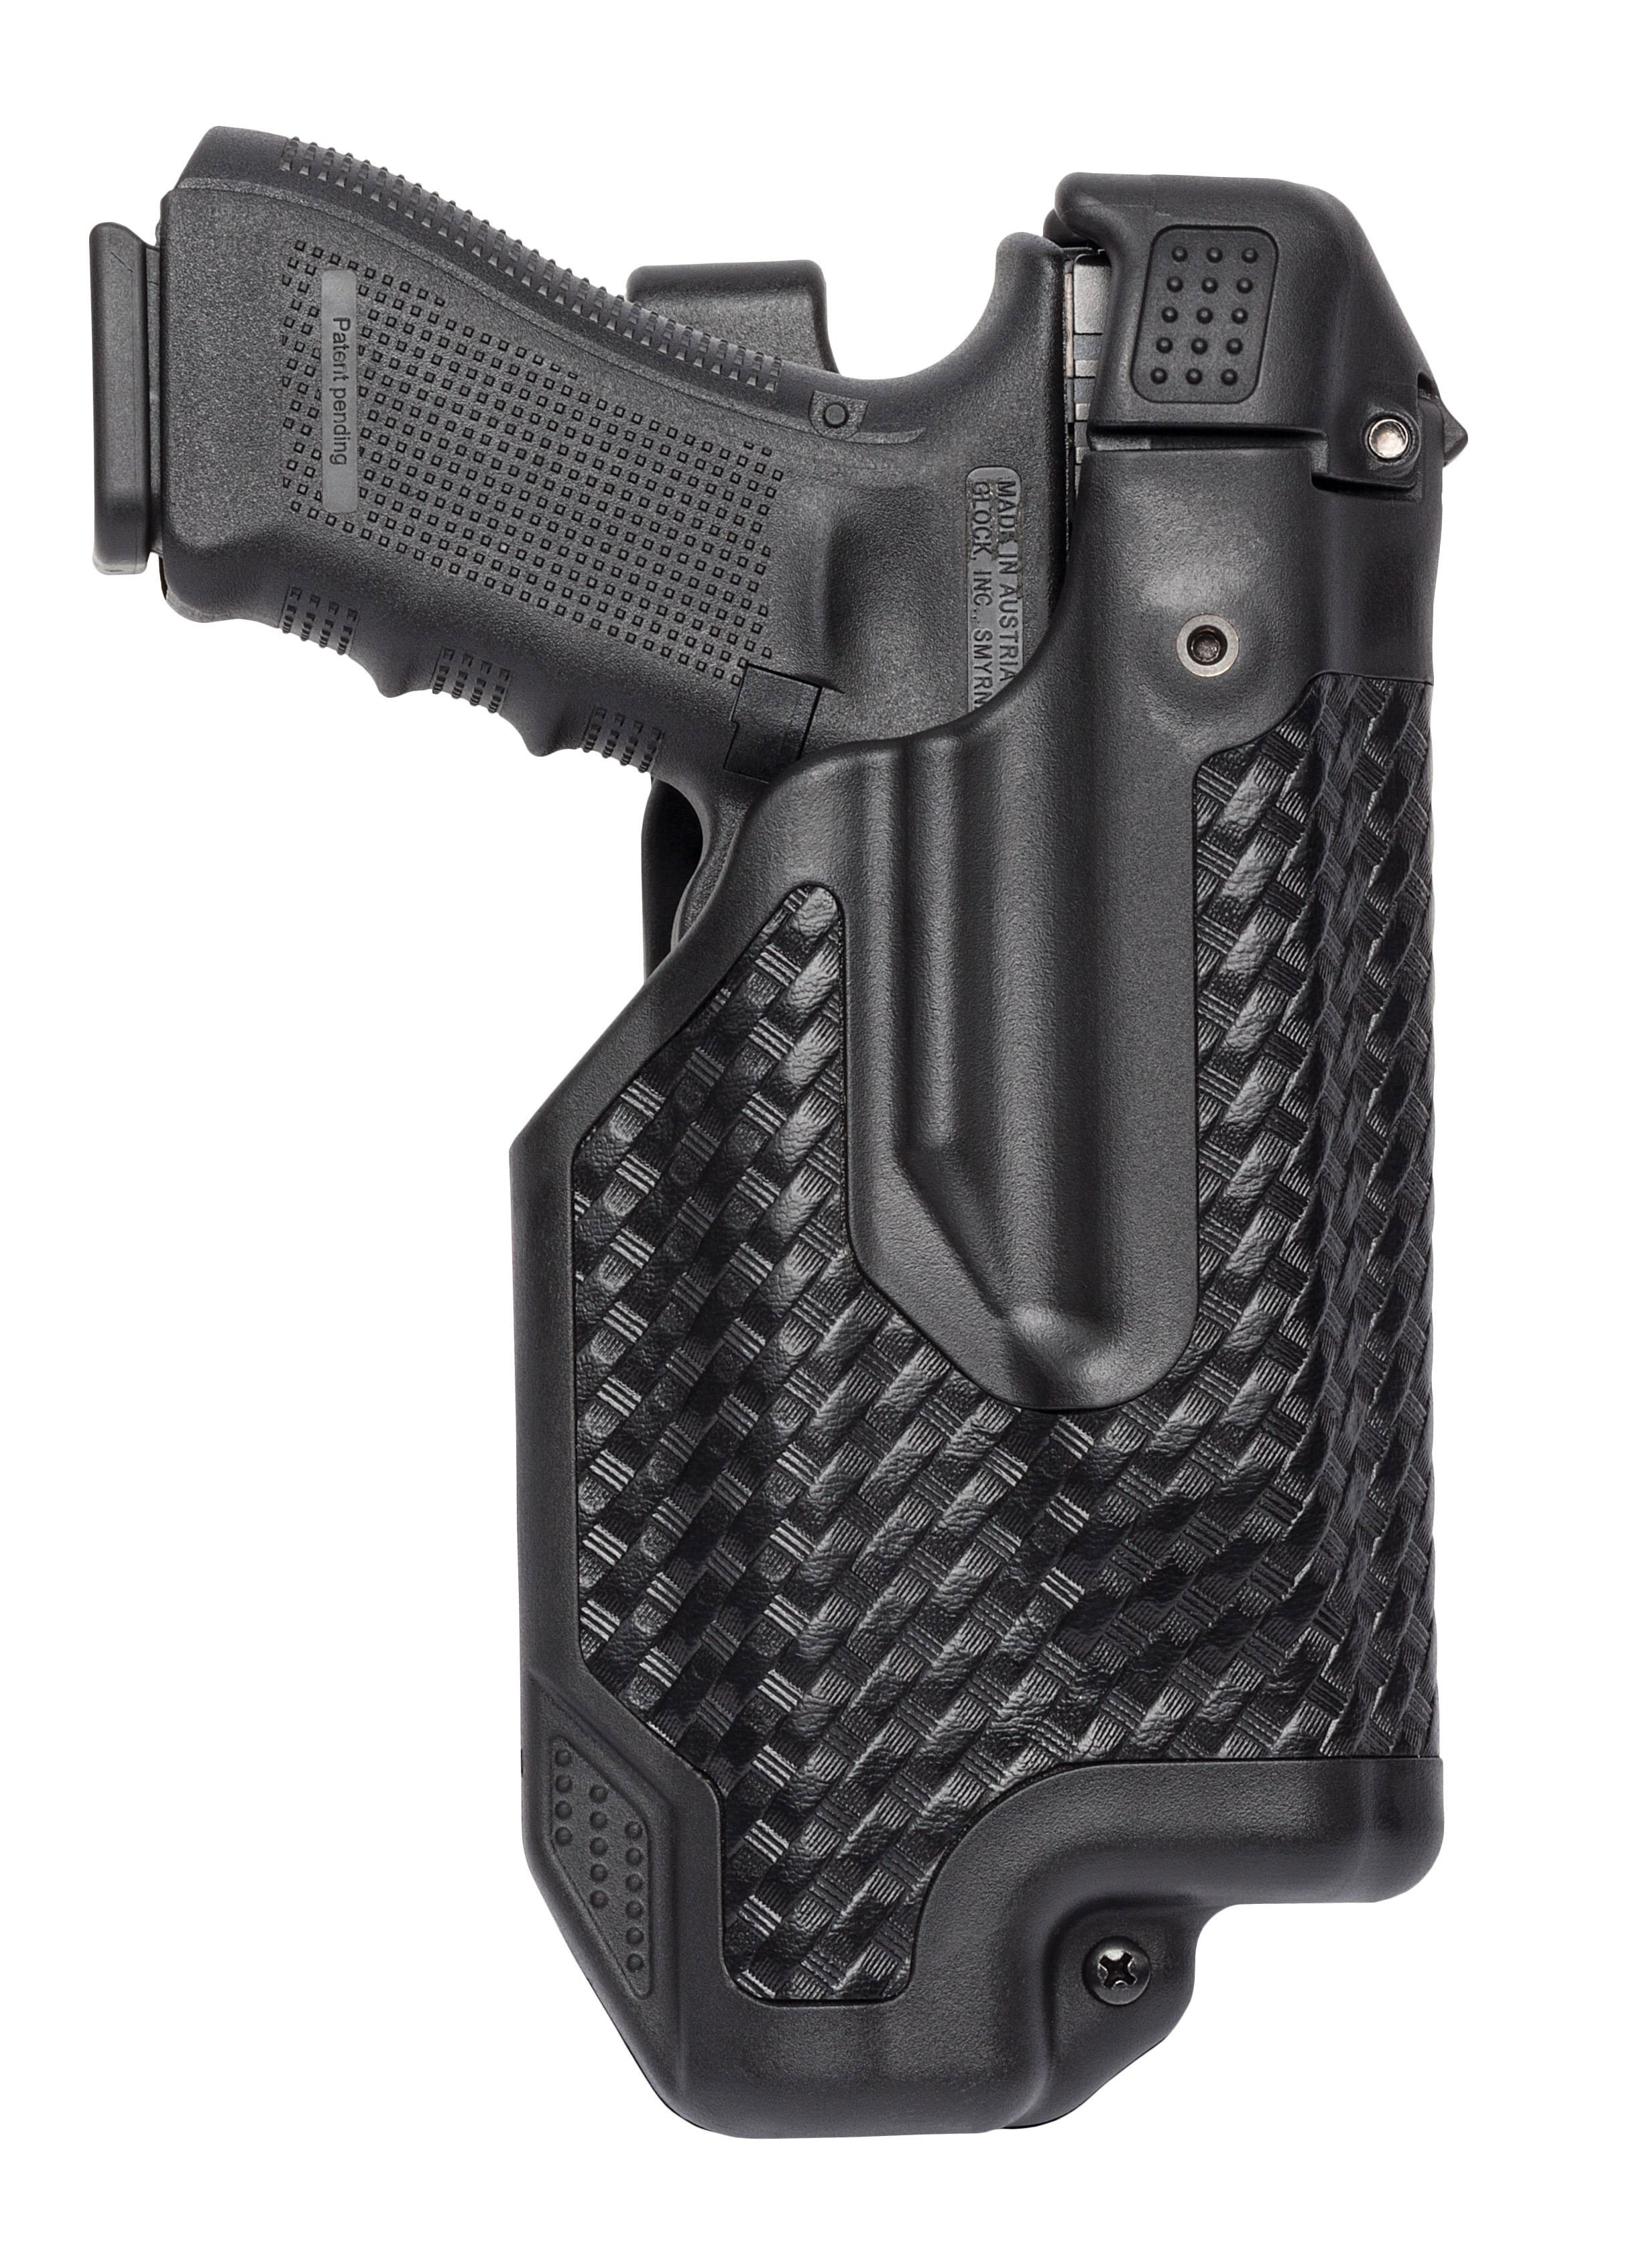 Blackhawk! EPOCH Level 3 Light Bearing Holster